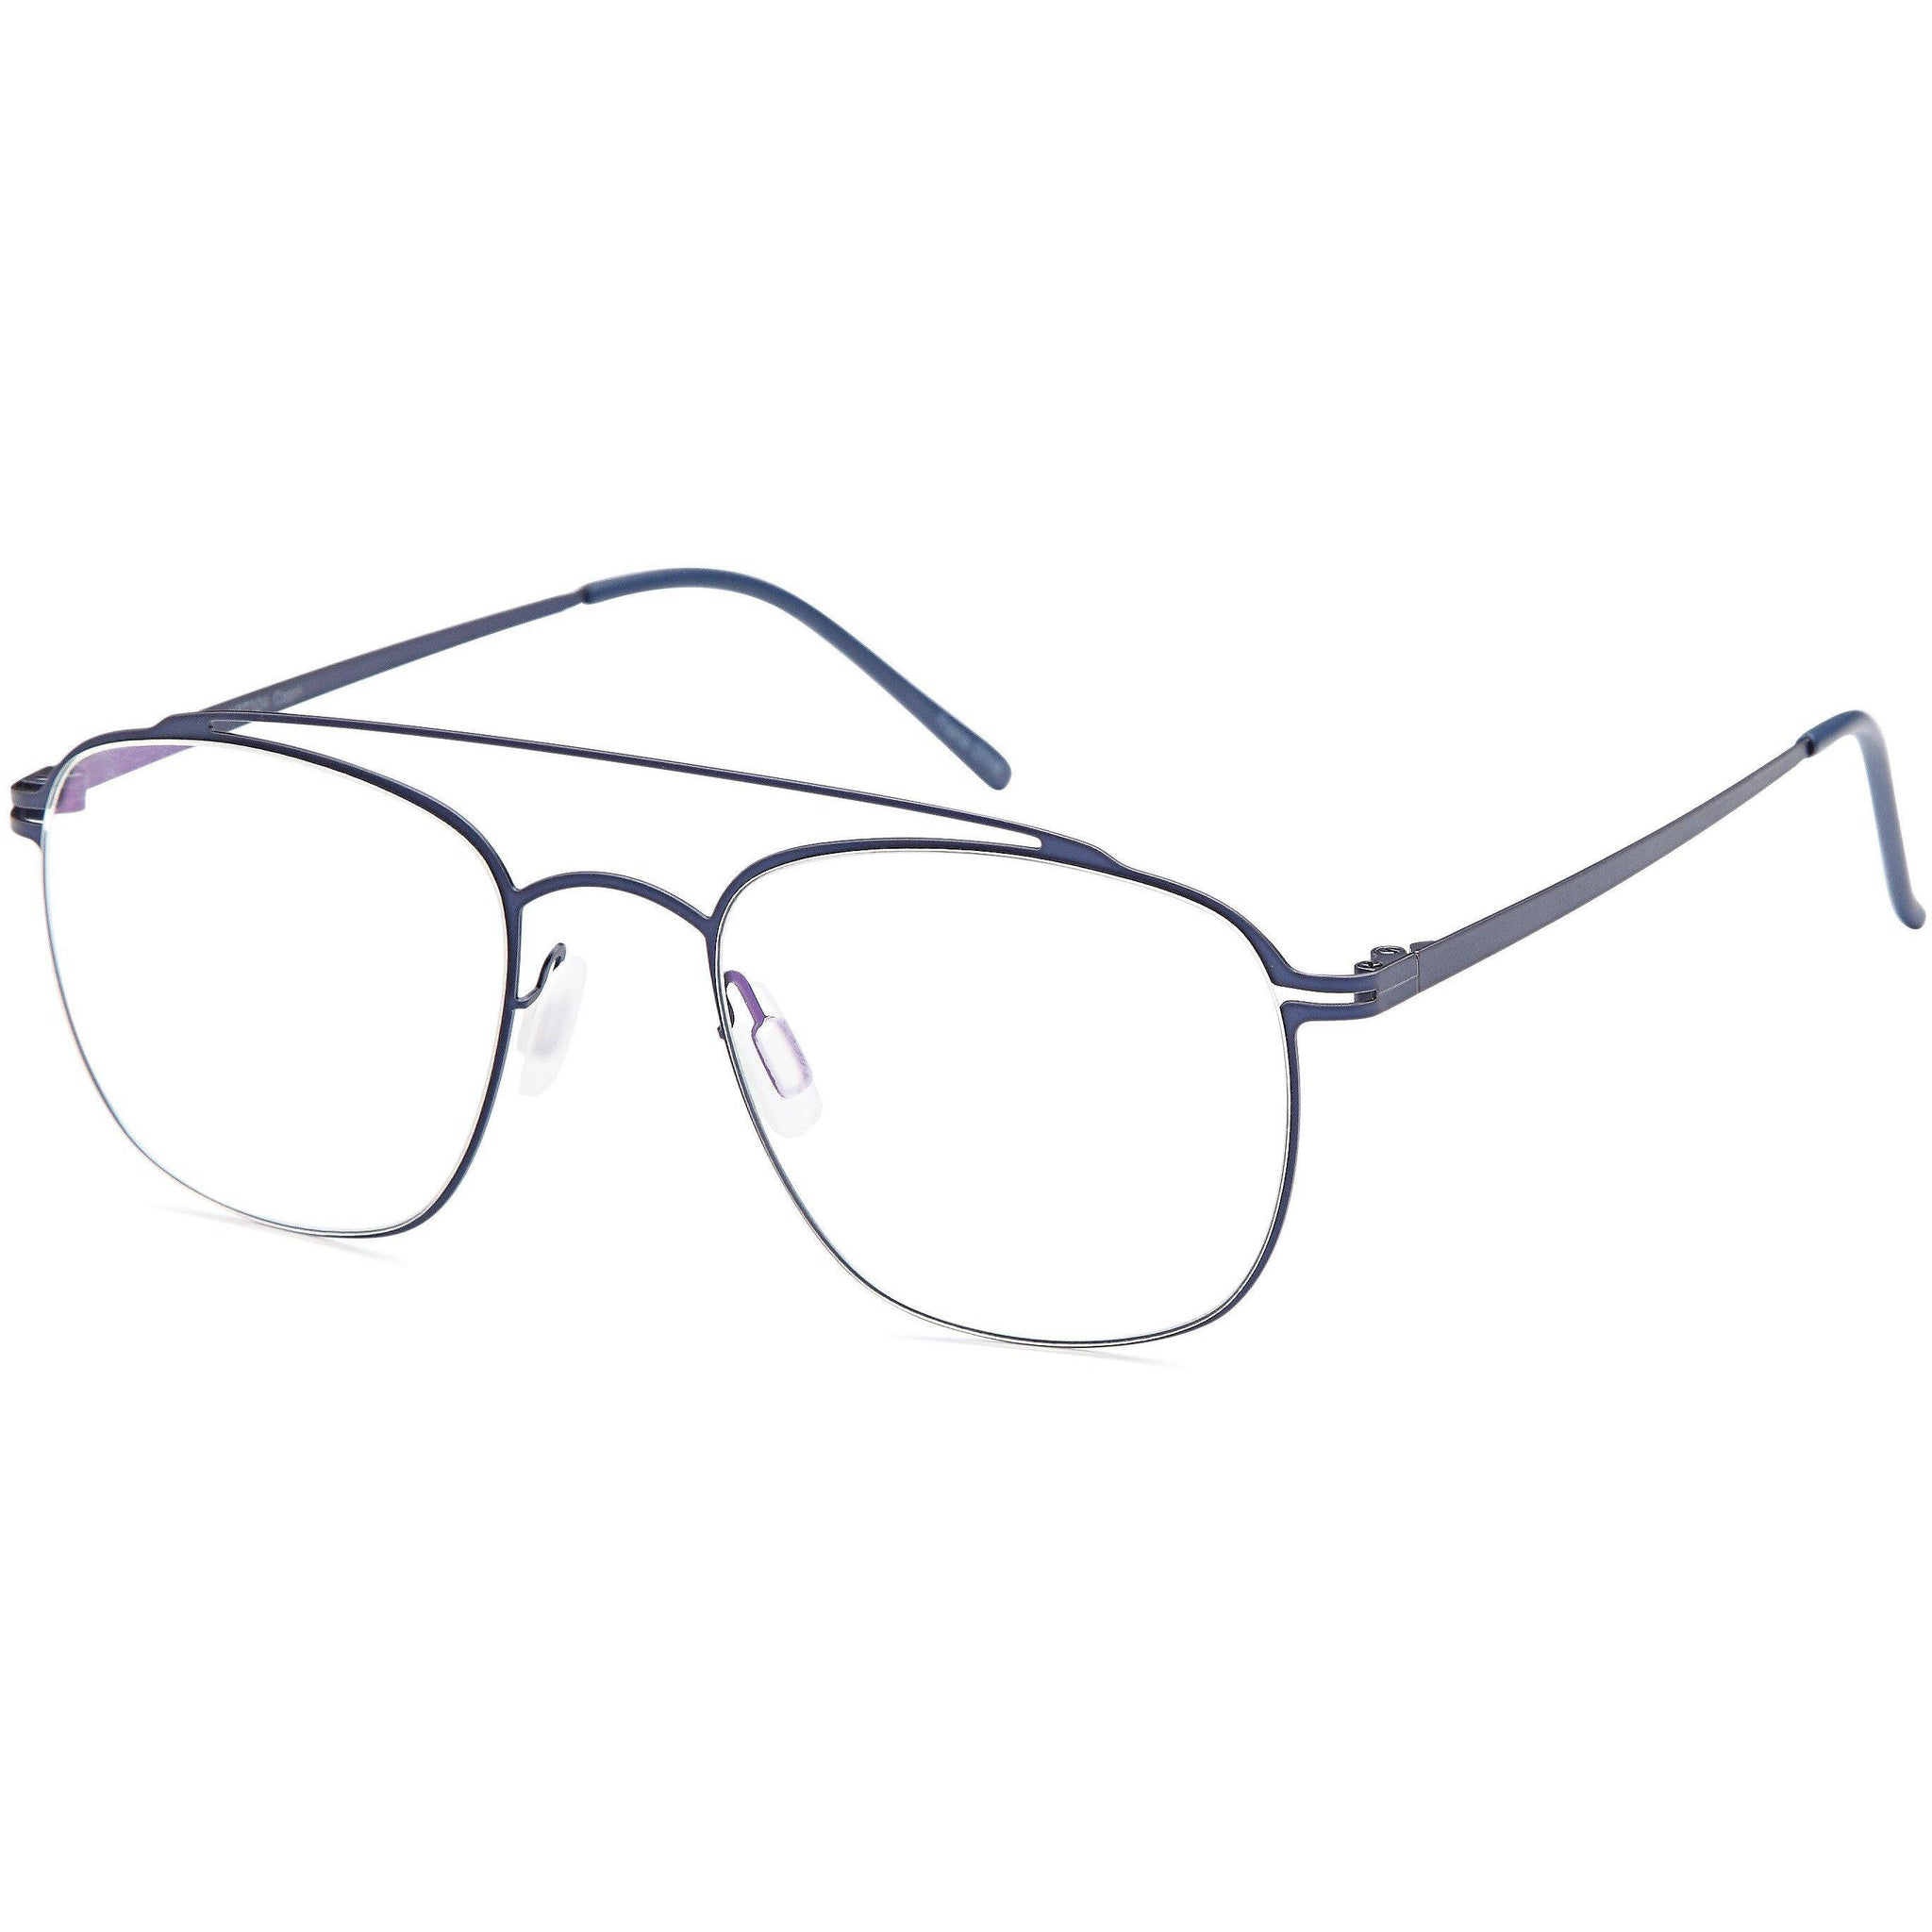 Sophistics Prescription Glasses ART 324 Frame